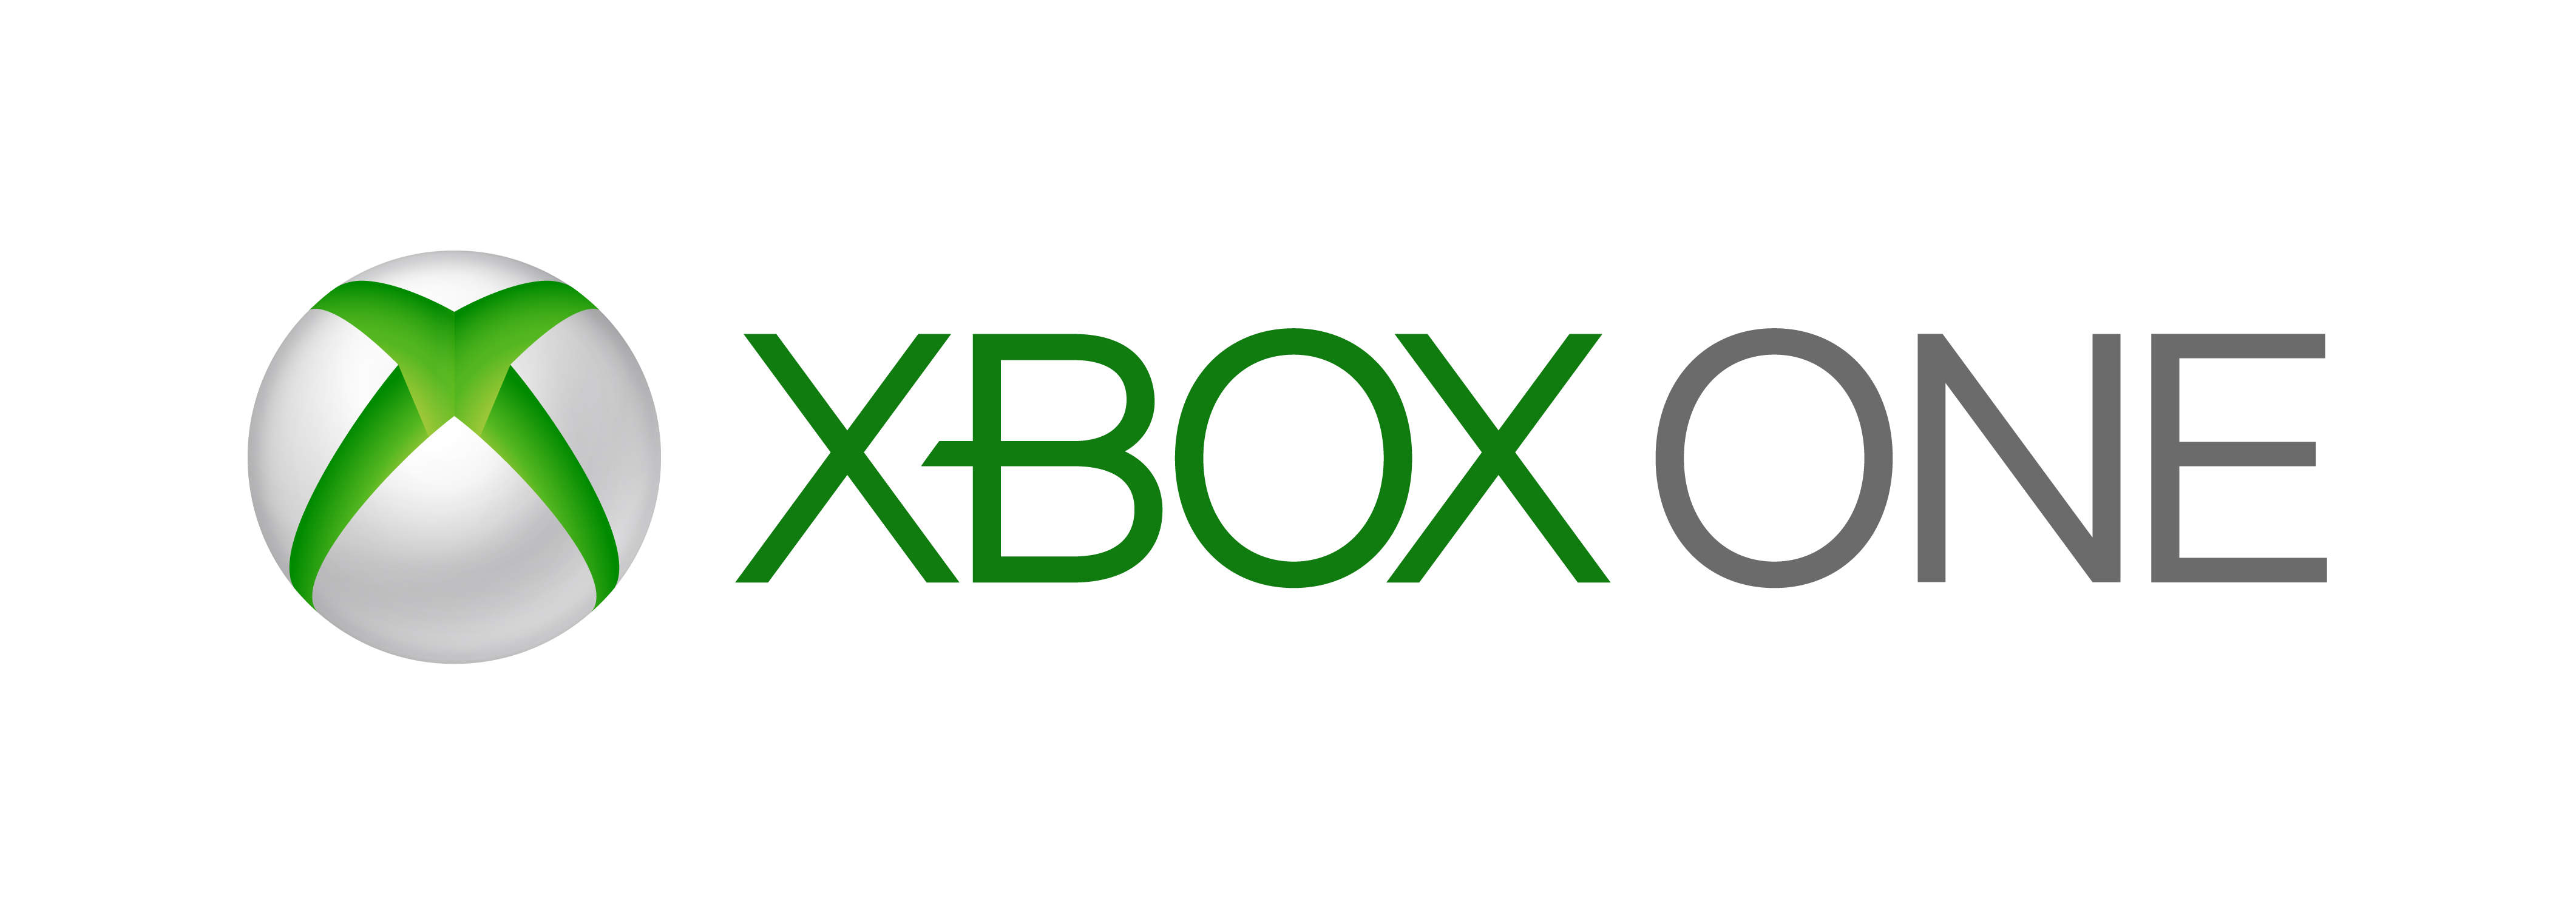 xbox-one-logo PNG Transparent download